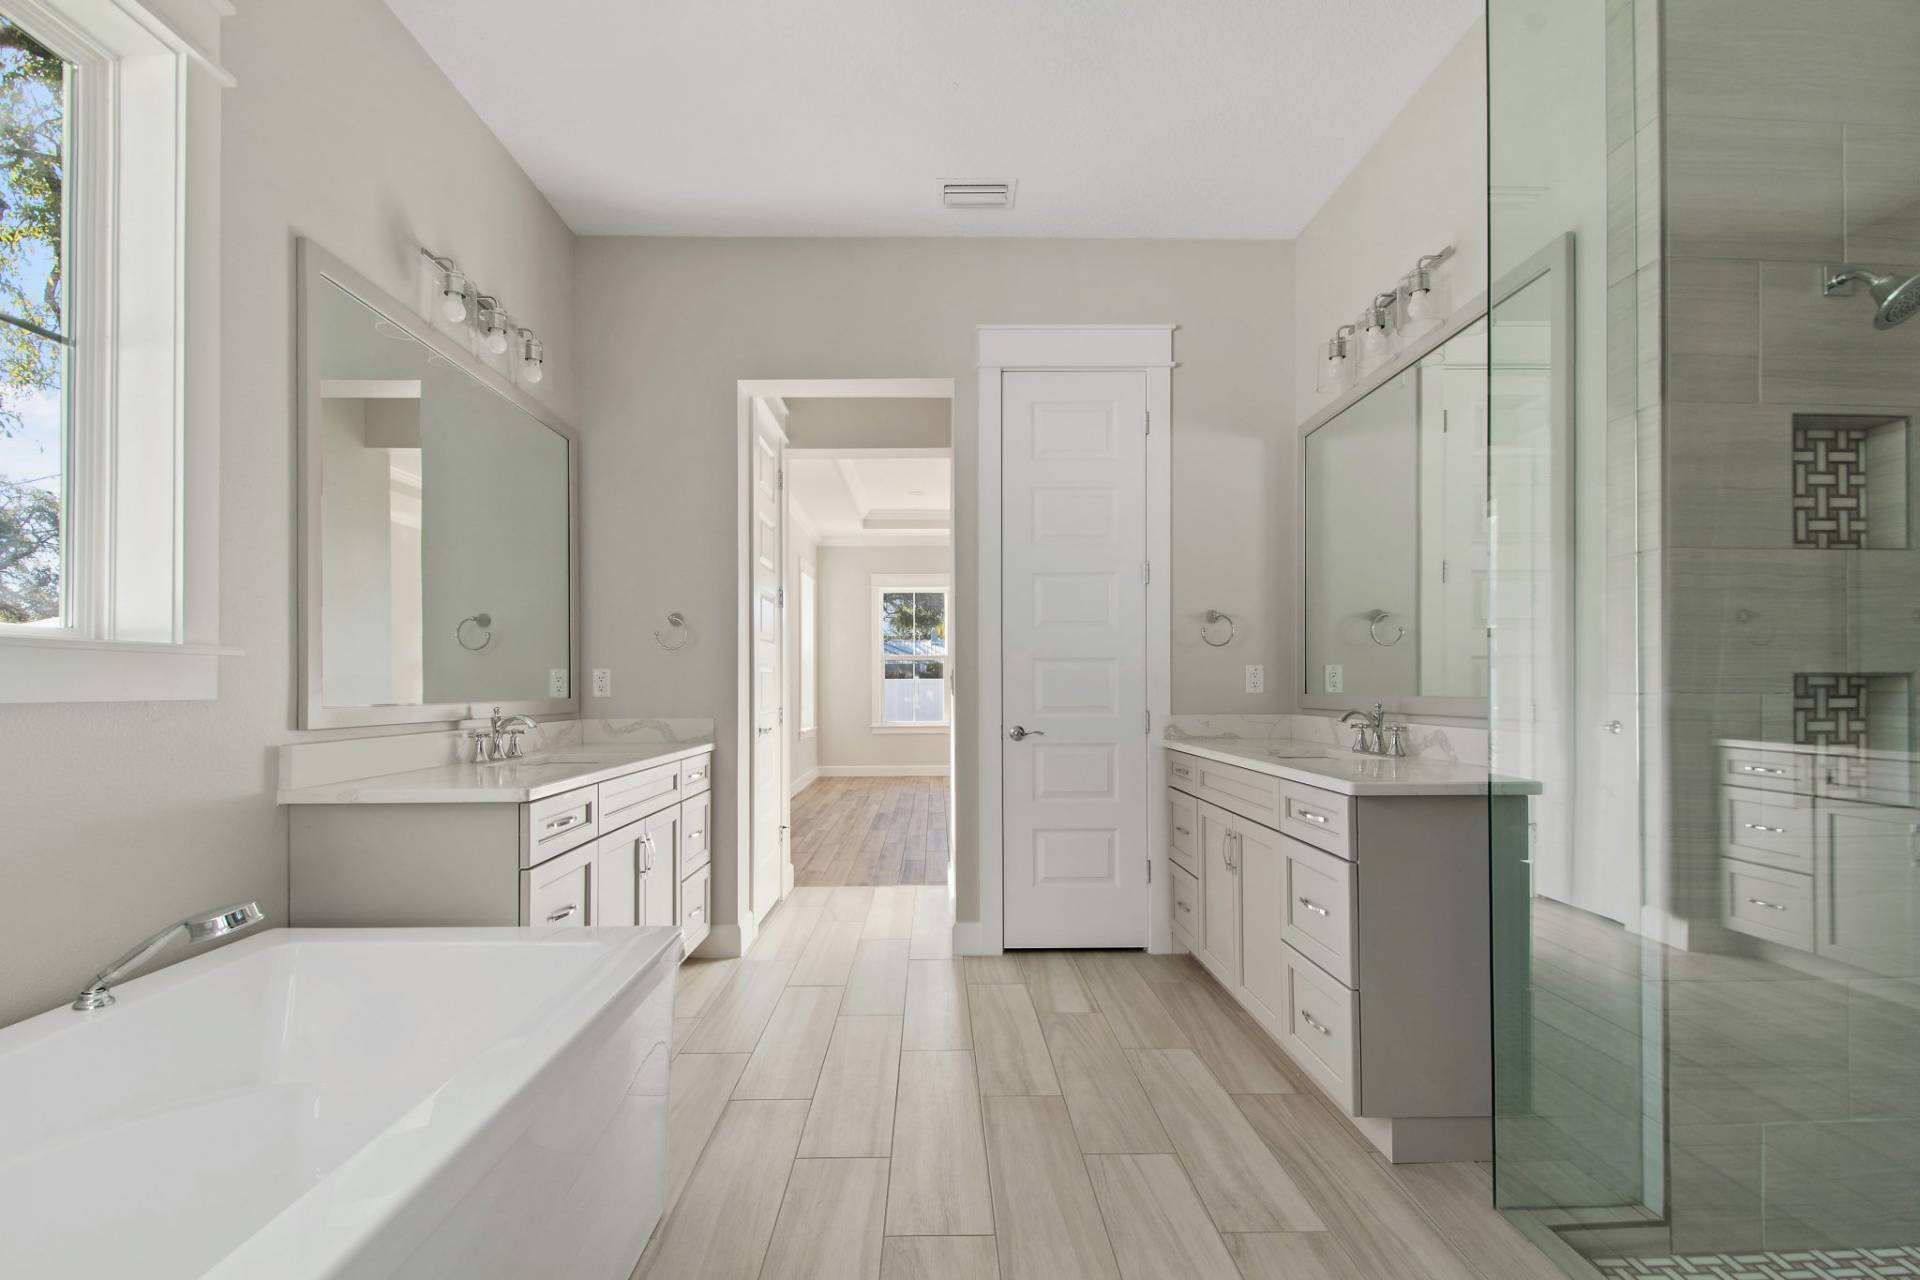 bathroom designed and built by New Legacy Homes, best of South Tampa homebuilder